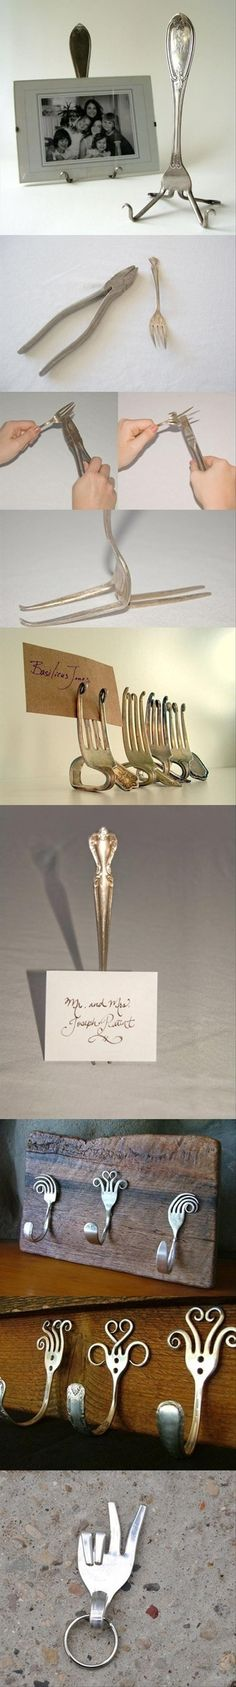 What can you do with a fork?